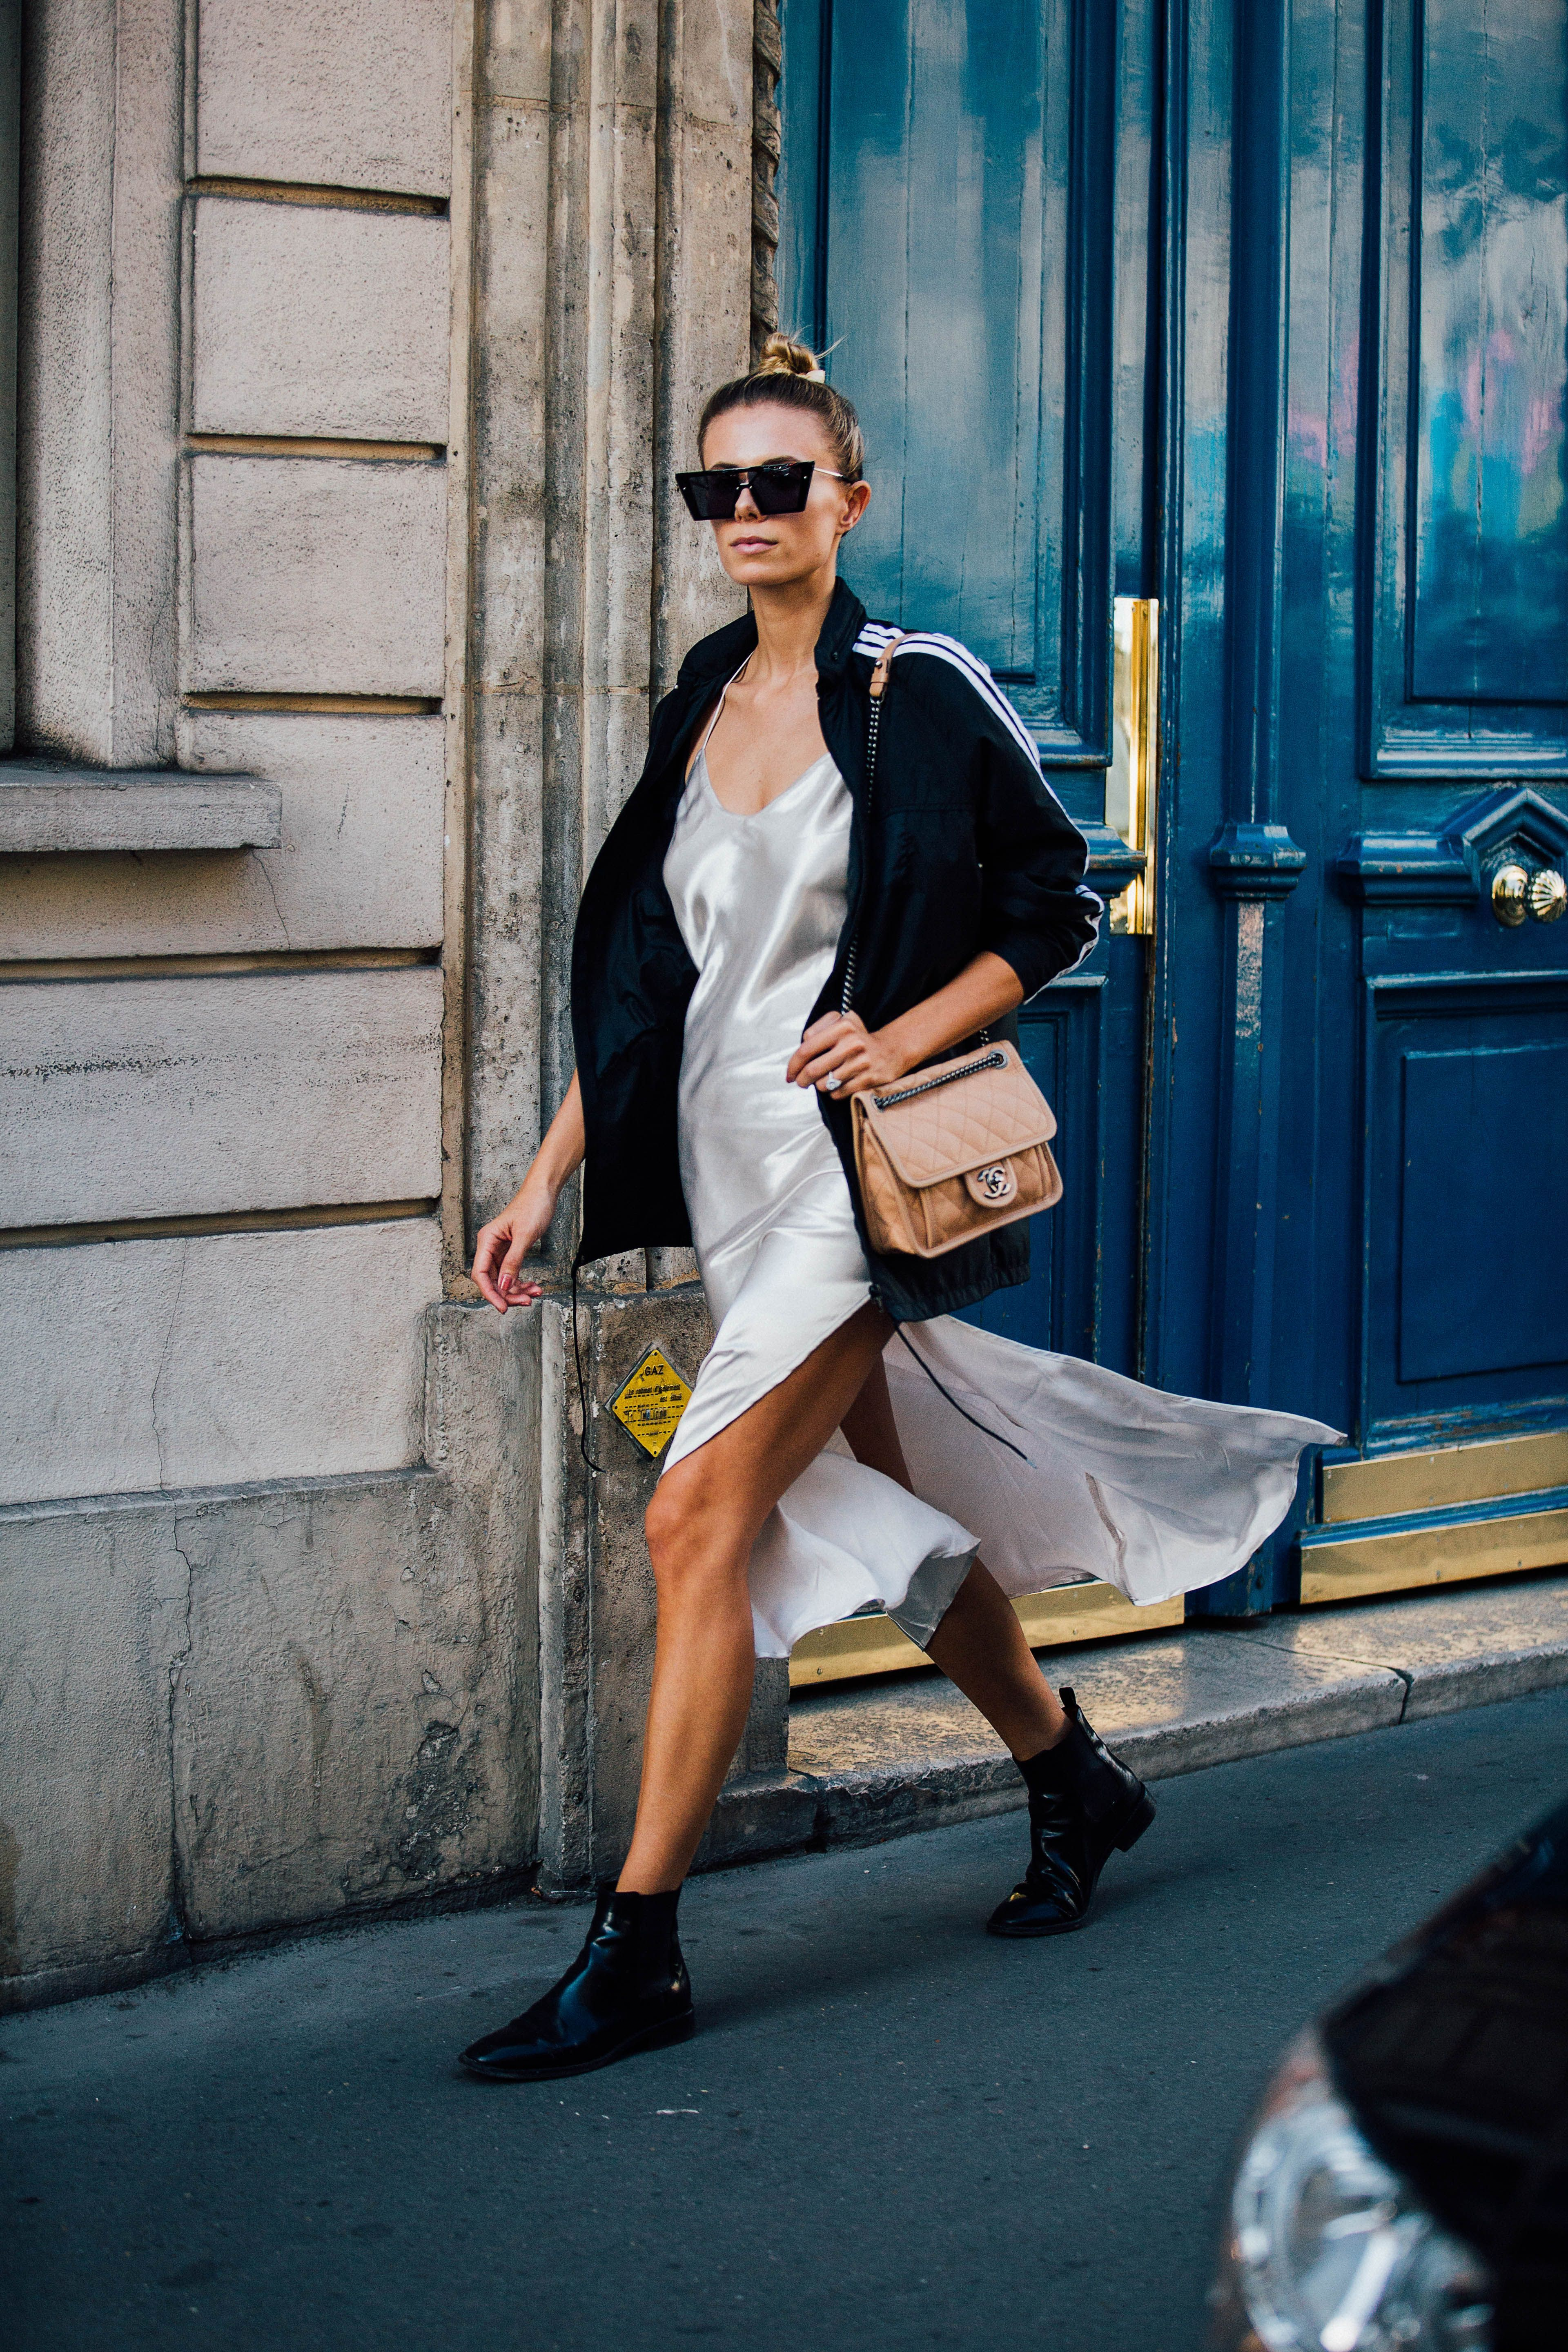 Street Style At London Fashion Week With Anouk: Best 25+ Street Styles Ideas On Pinterest